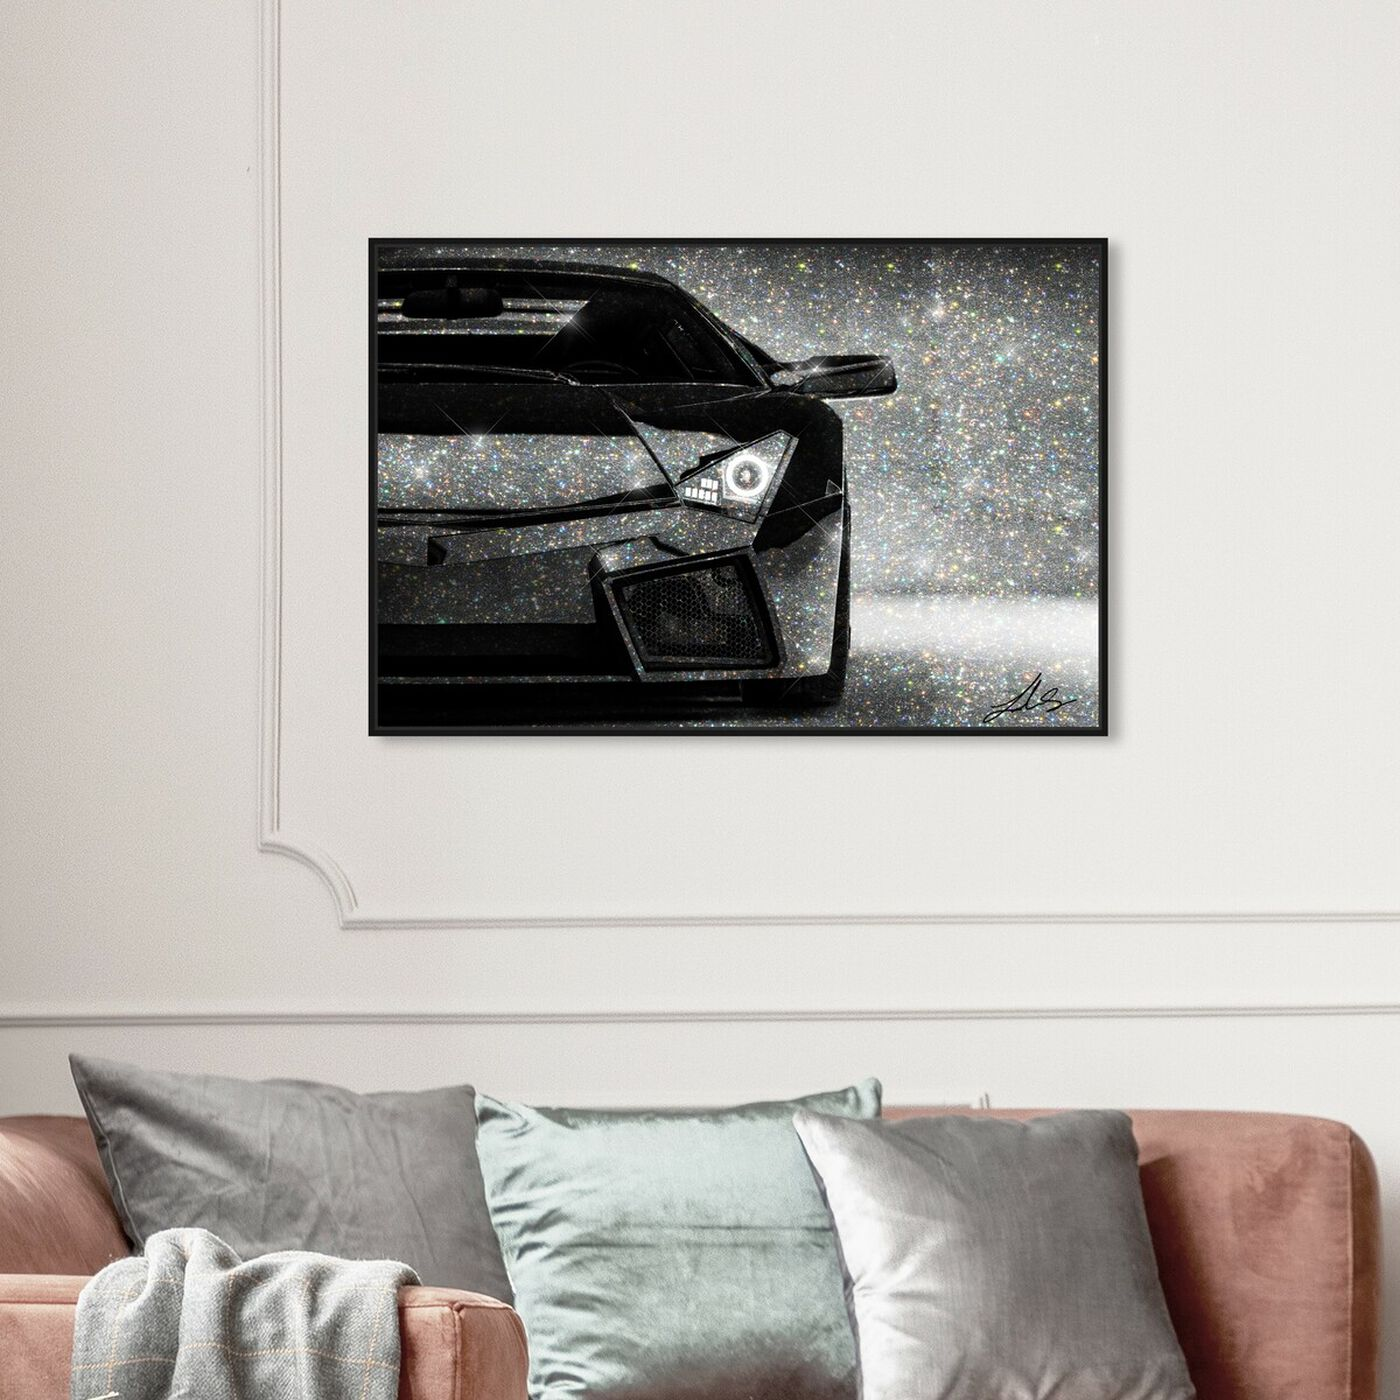 Hanging view of Love Doesn't Drive a Lambo featuring transportation and automobiles art.